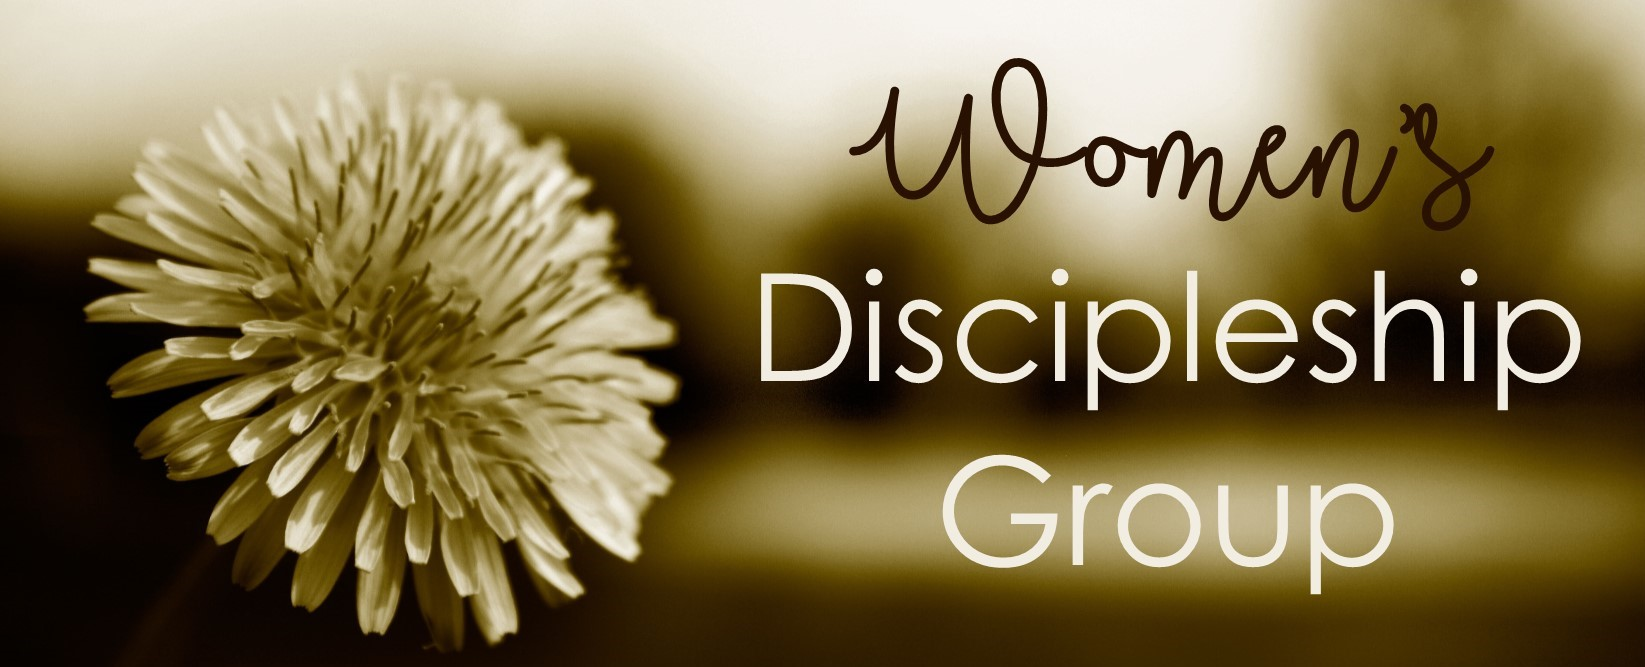 Women's Discipleship Group image